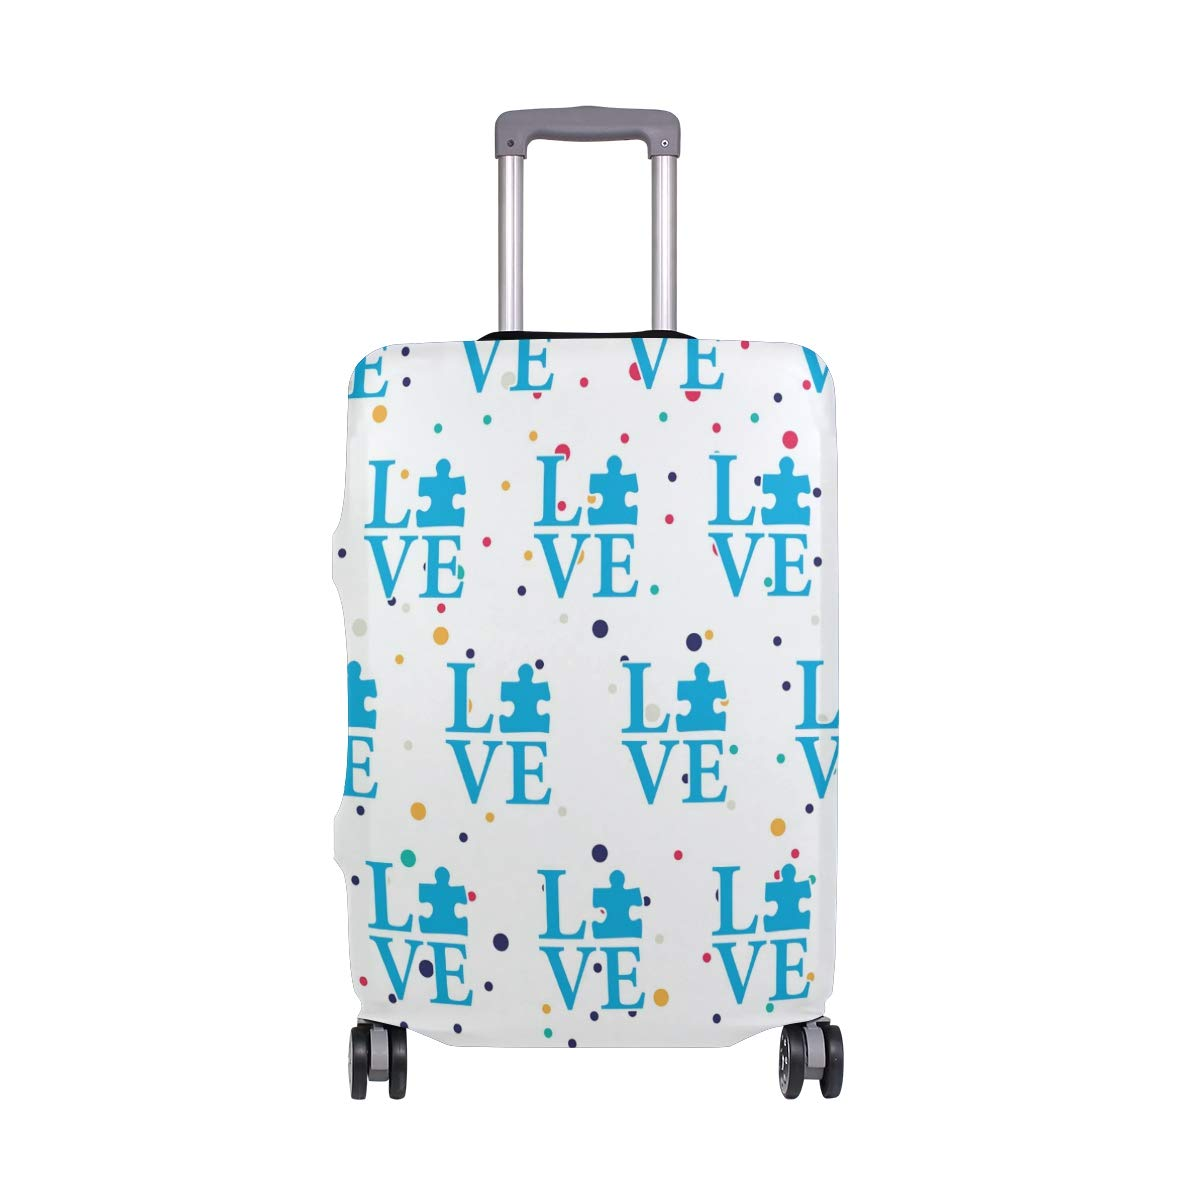 Love Autism Puzzle Travel Luggage Cover - Suitcase Protector HLive Spandex Dust Proof Covers with Zipper, Fits 18-32 inch